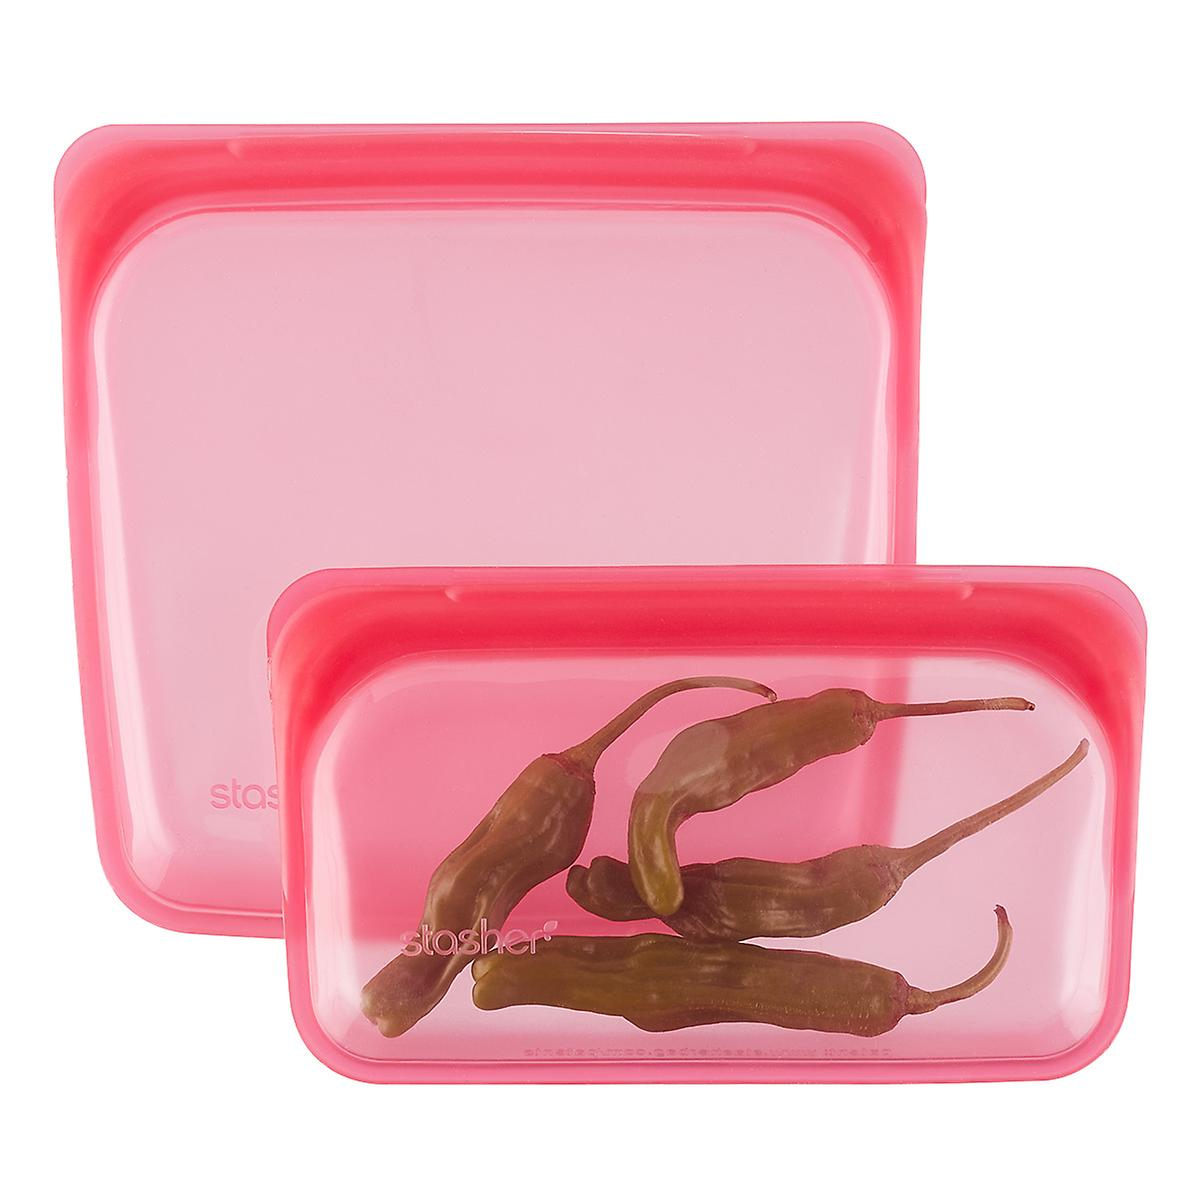 Stasher Raspberry Silicone Reusable Storage Bag